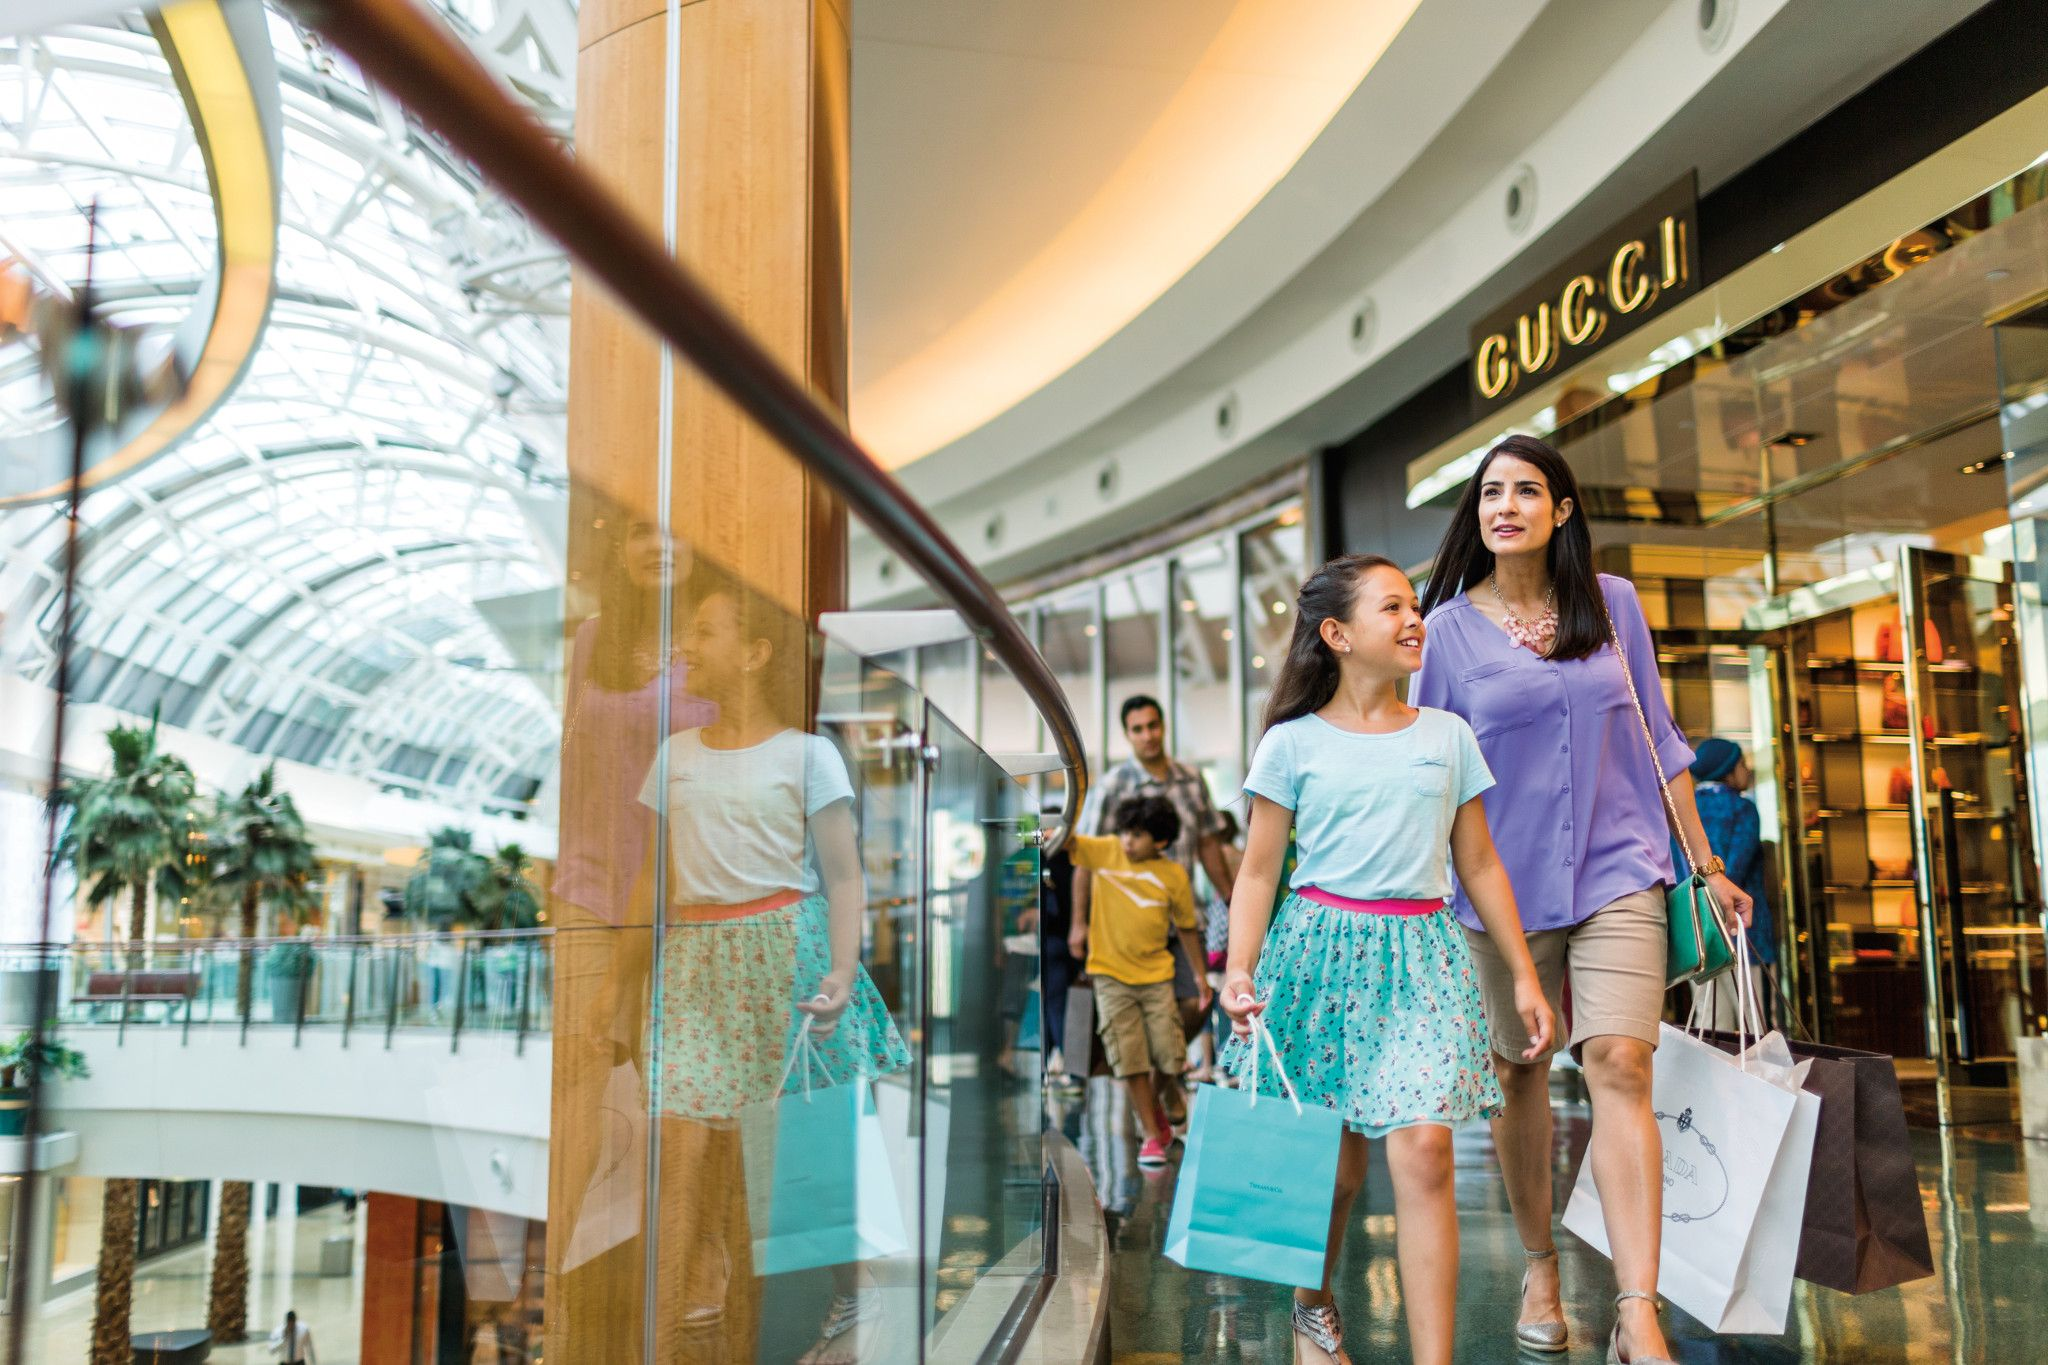 462a7a7778f63 Enjoy the Best of Shopping in Orlando This Spring